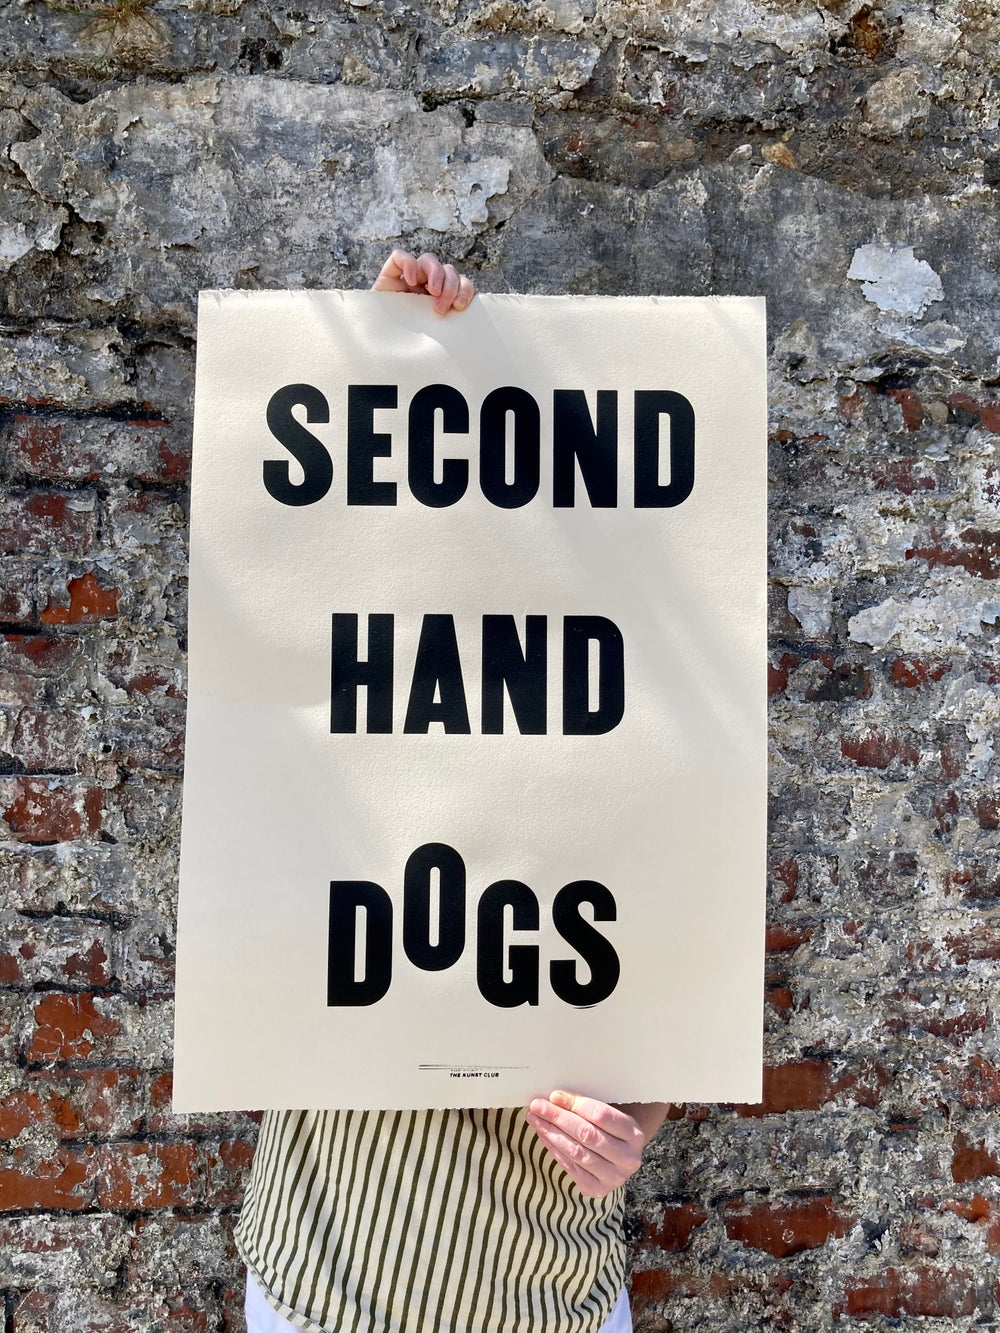 Image of Second Hand Dogs